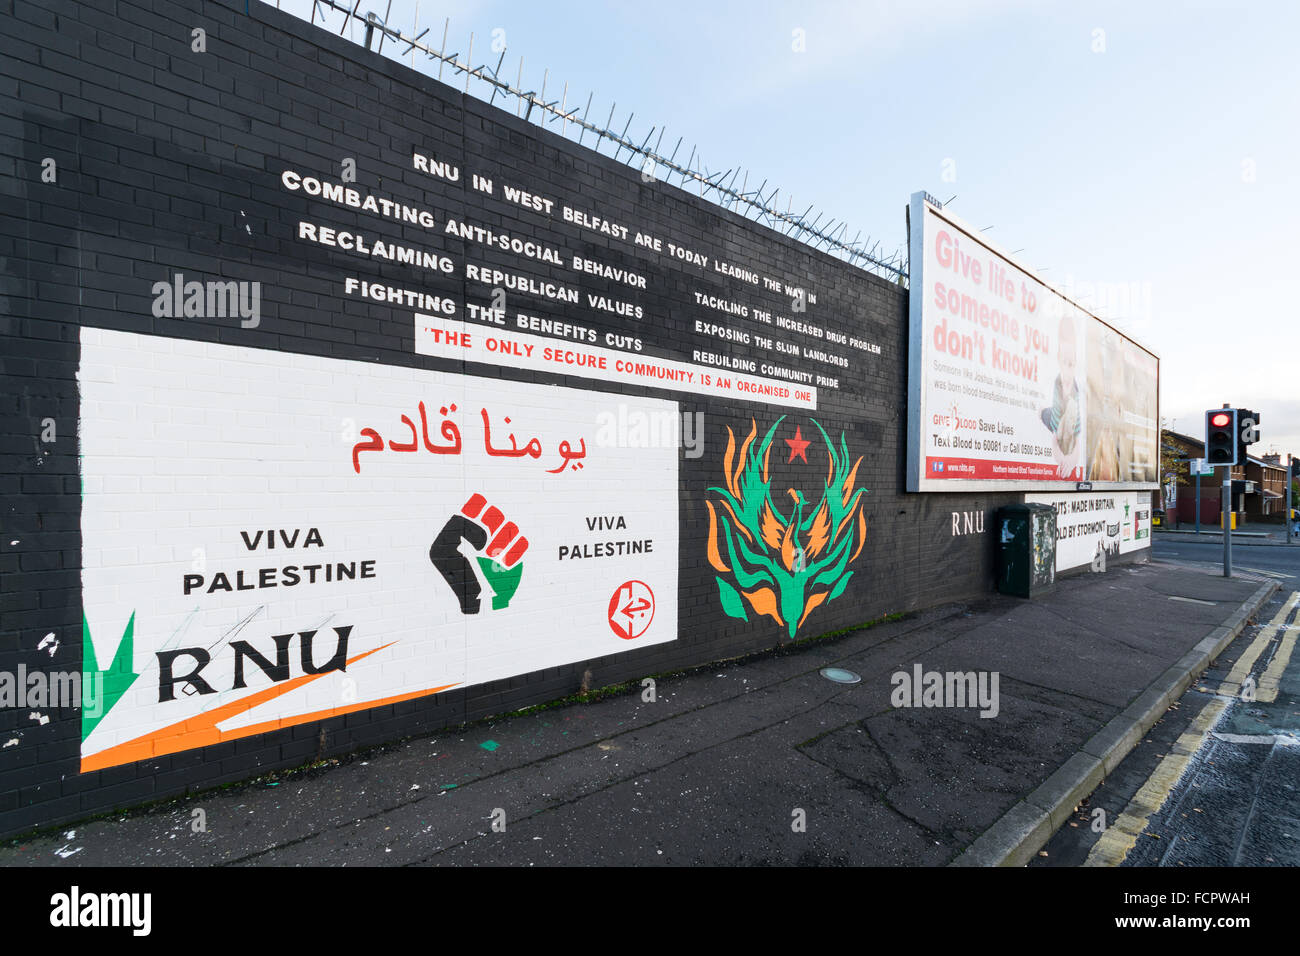 RNU mural at Belfast's Falls Road with Palestine solidarity message. - Stock Image